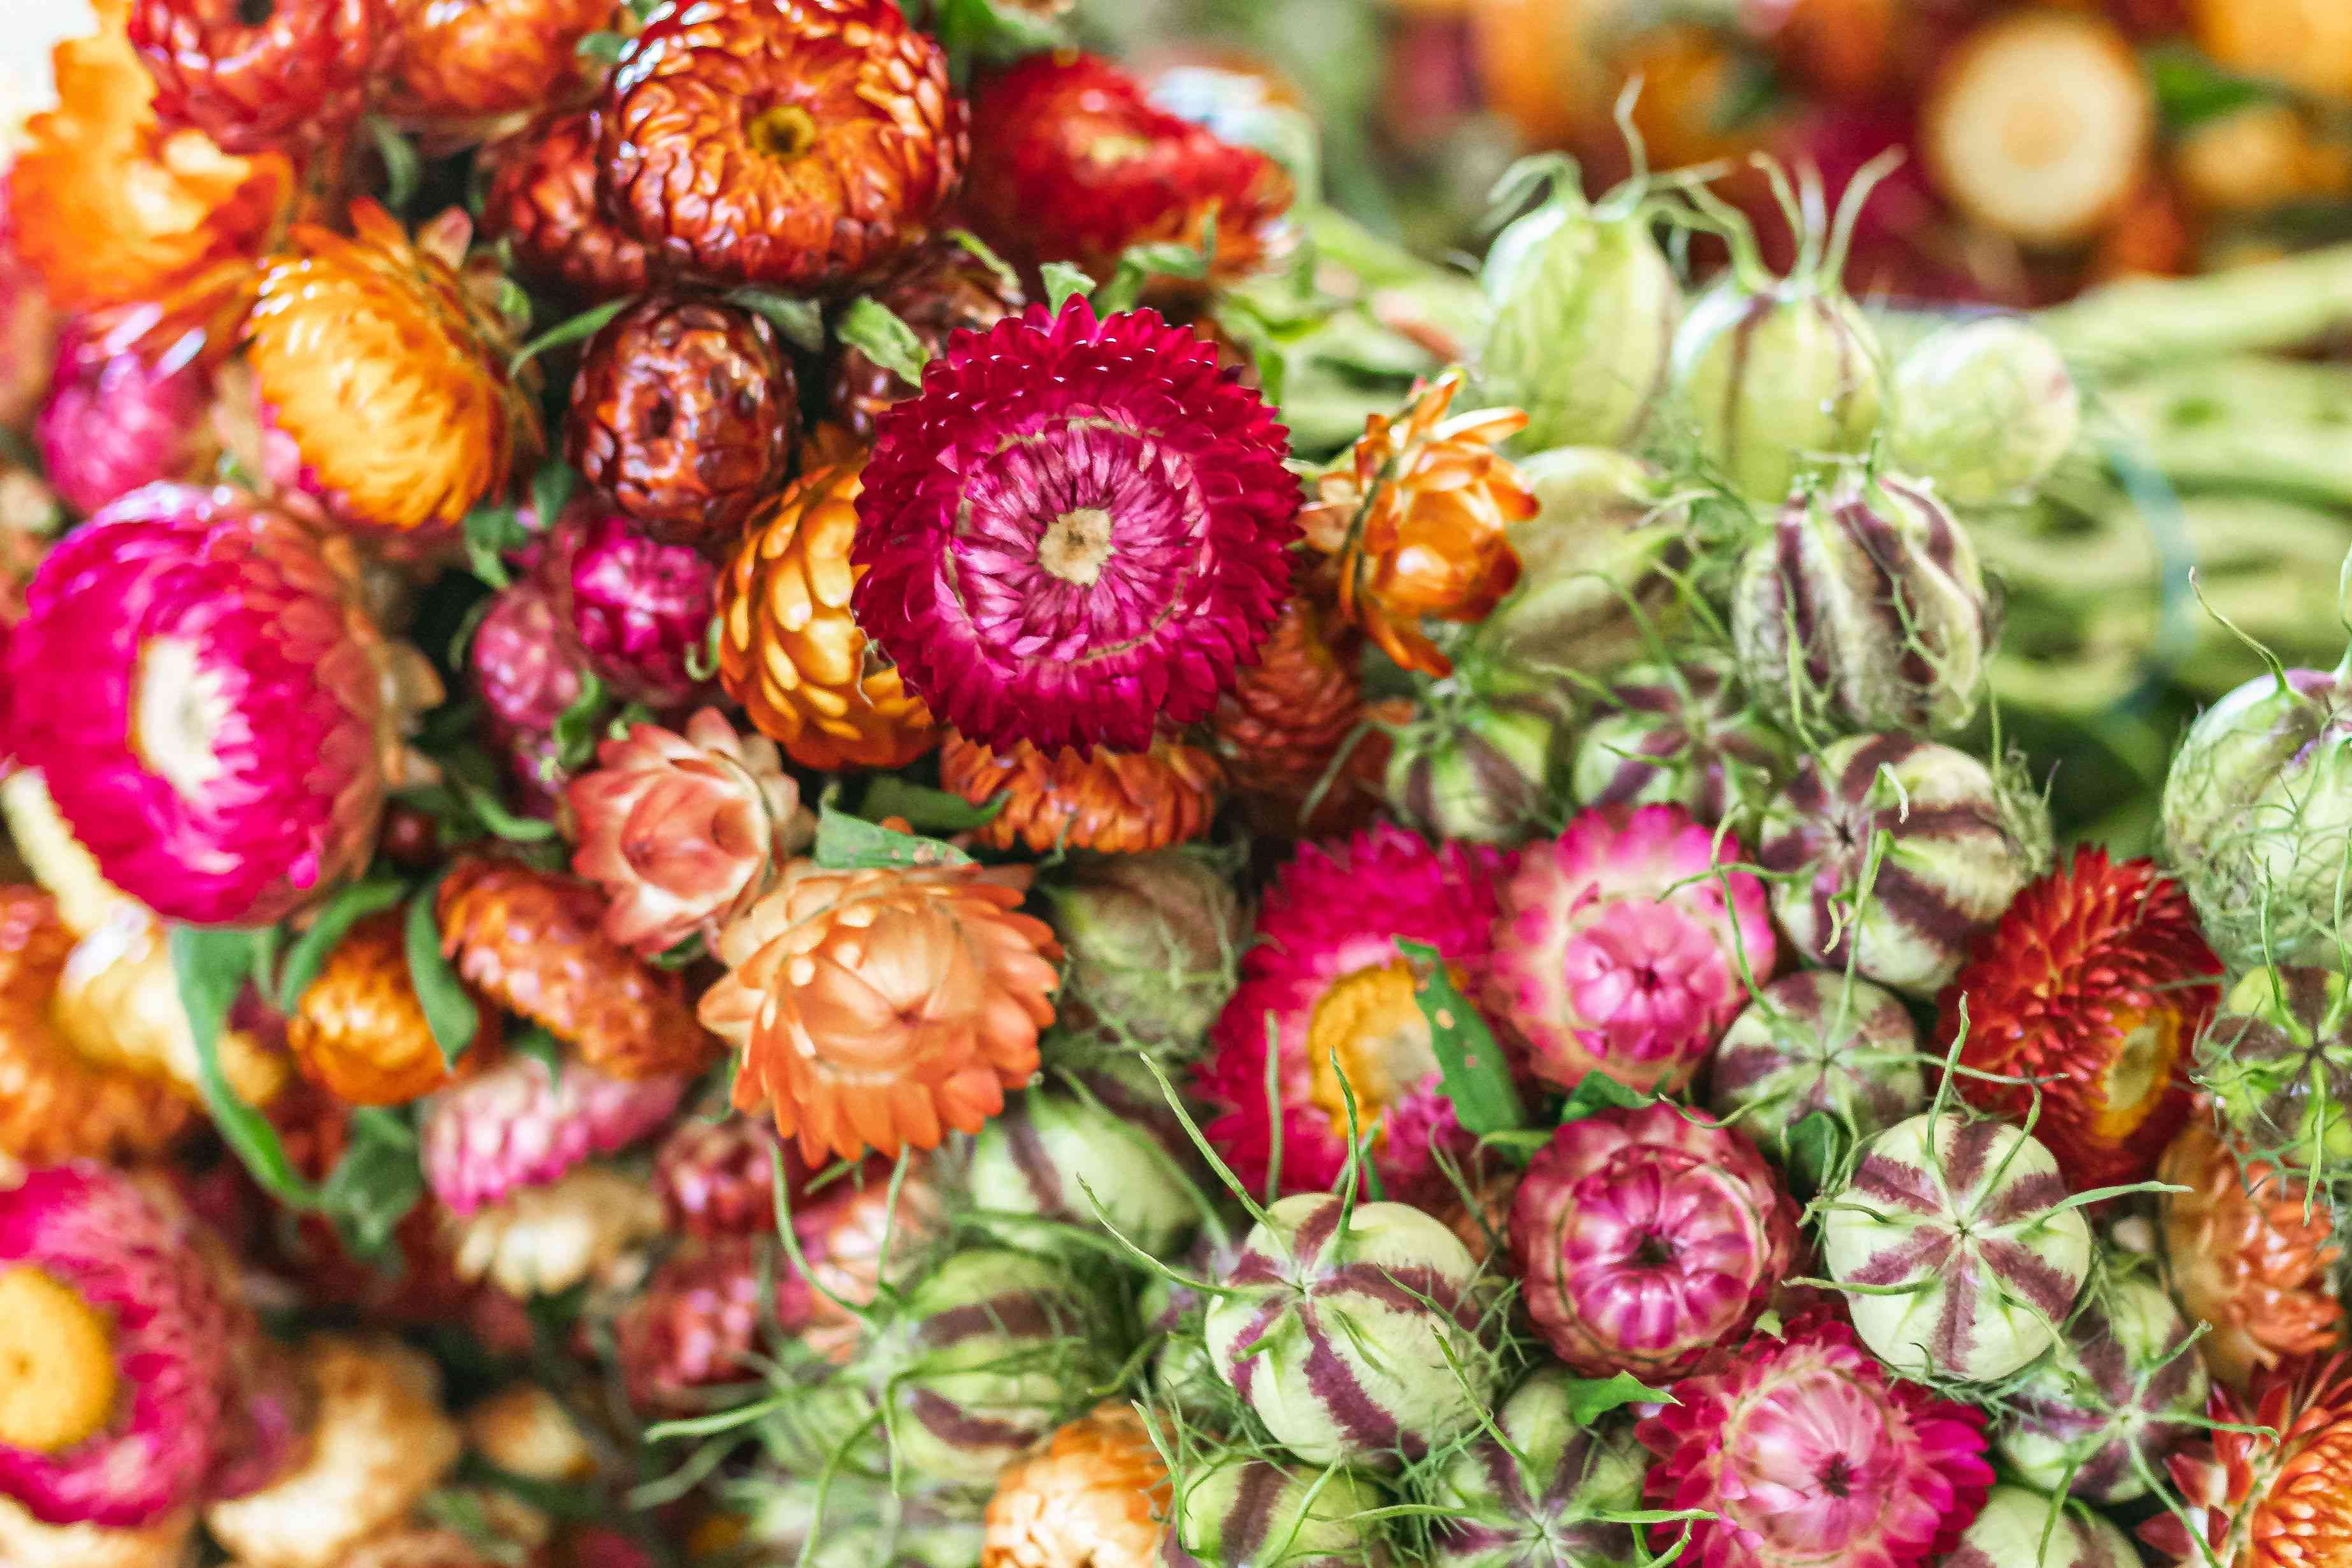 Strawflower with deep pink, orange and copper colored petals clustered in garden closeup